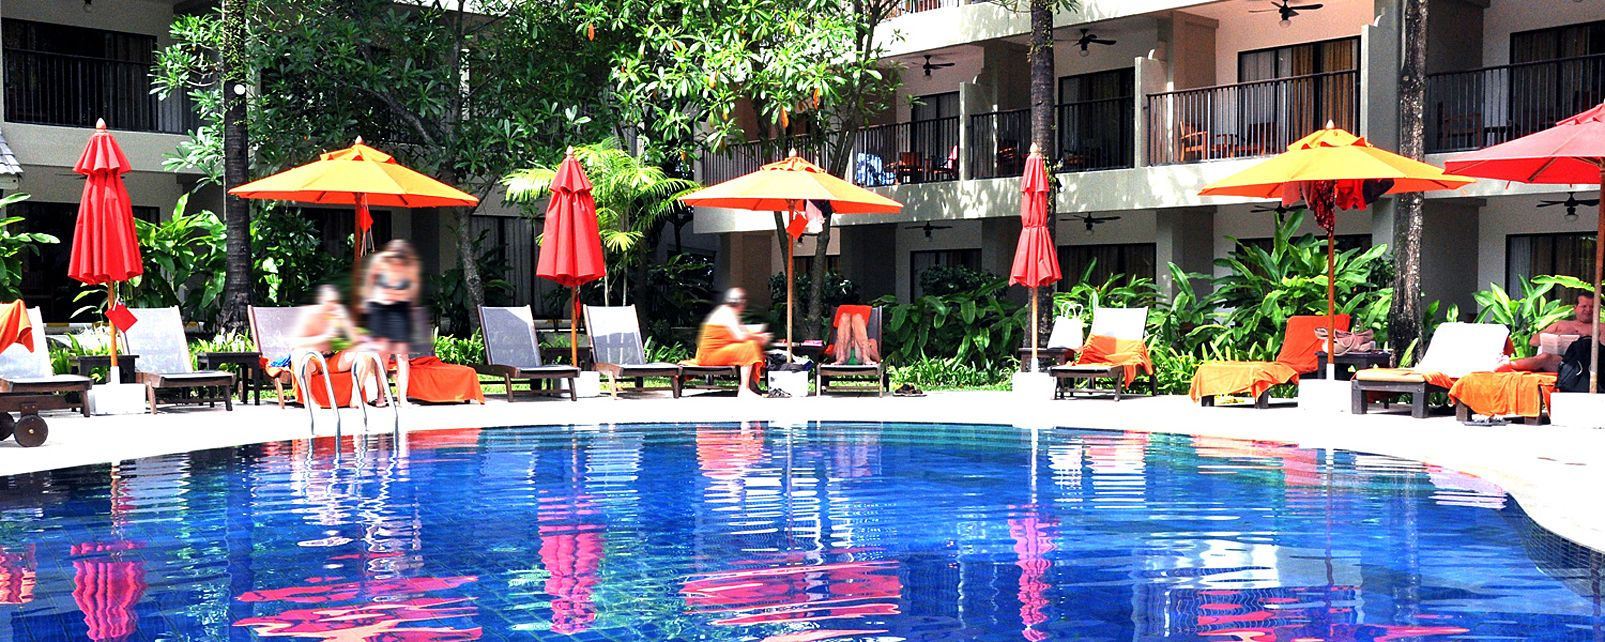 Hotel Courtyard Phuket at Surin Beach